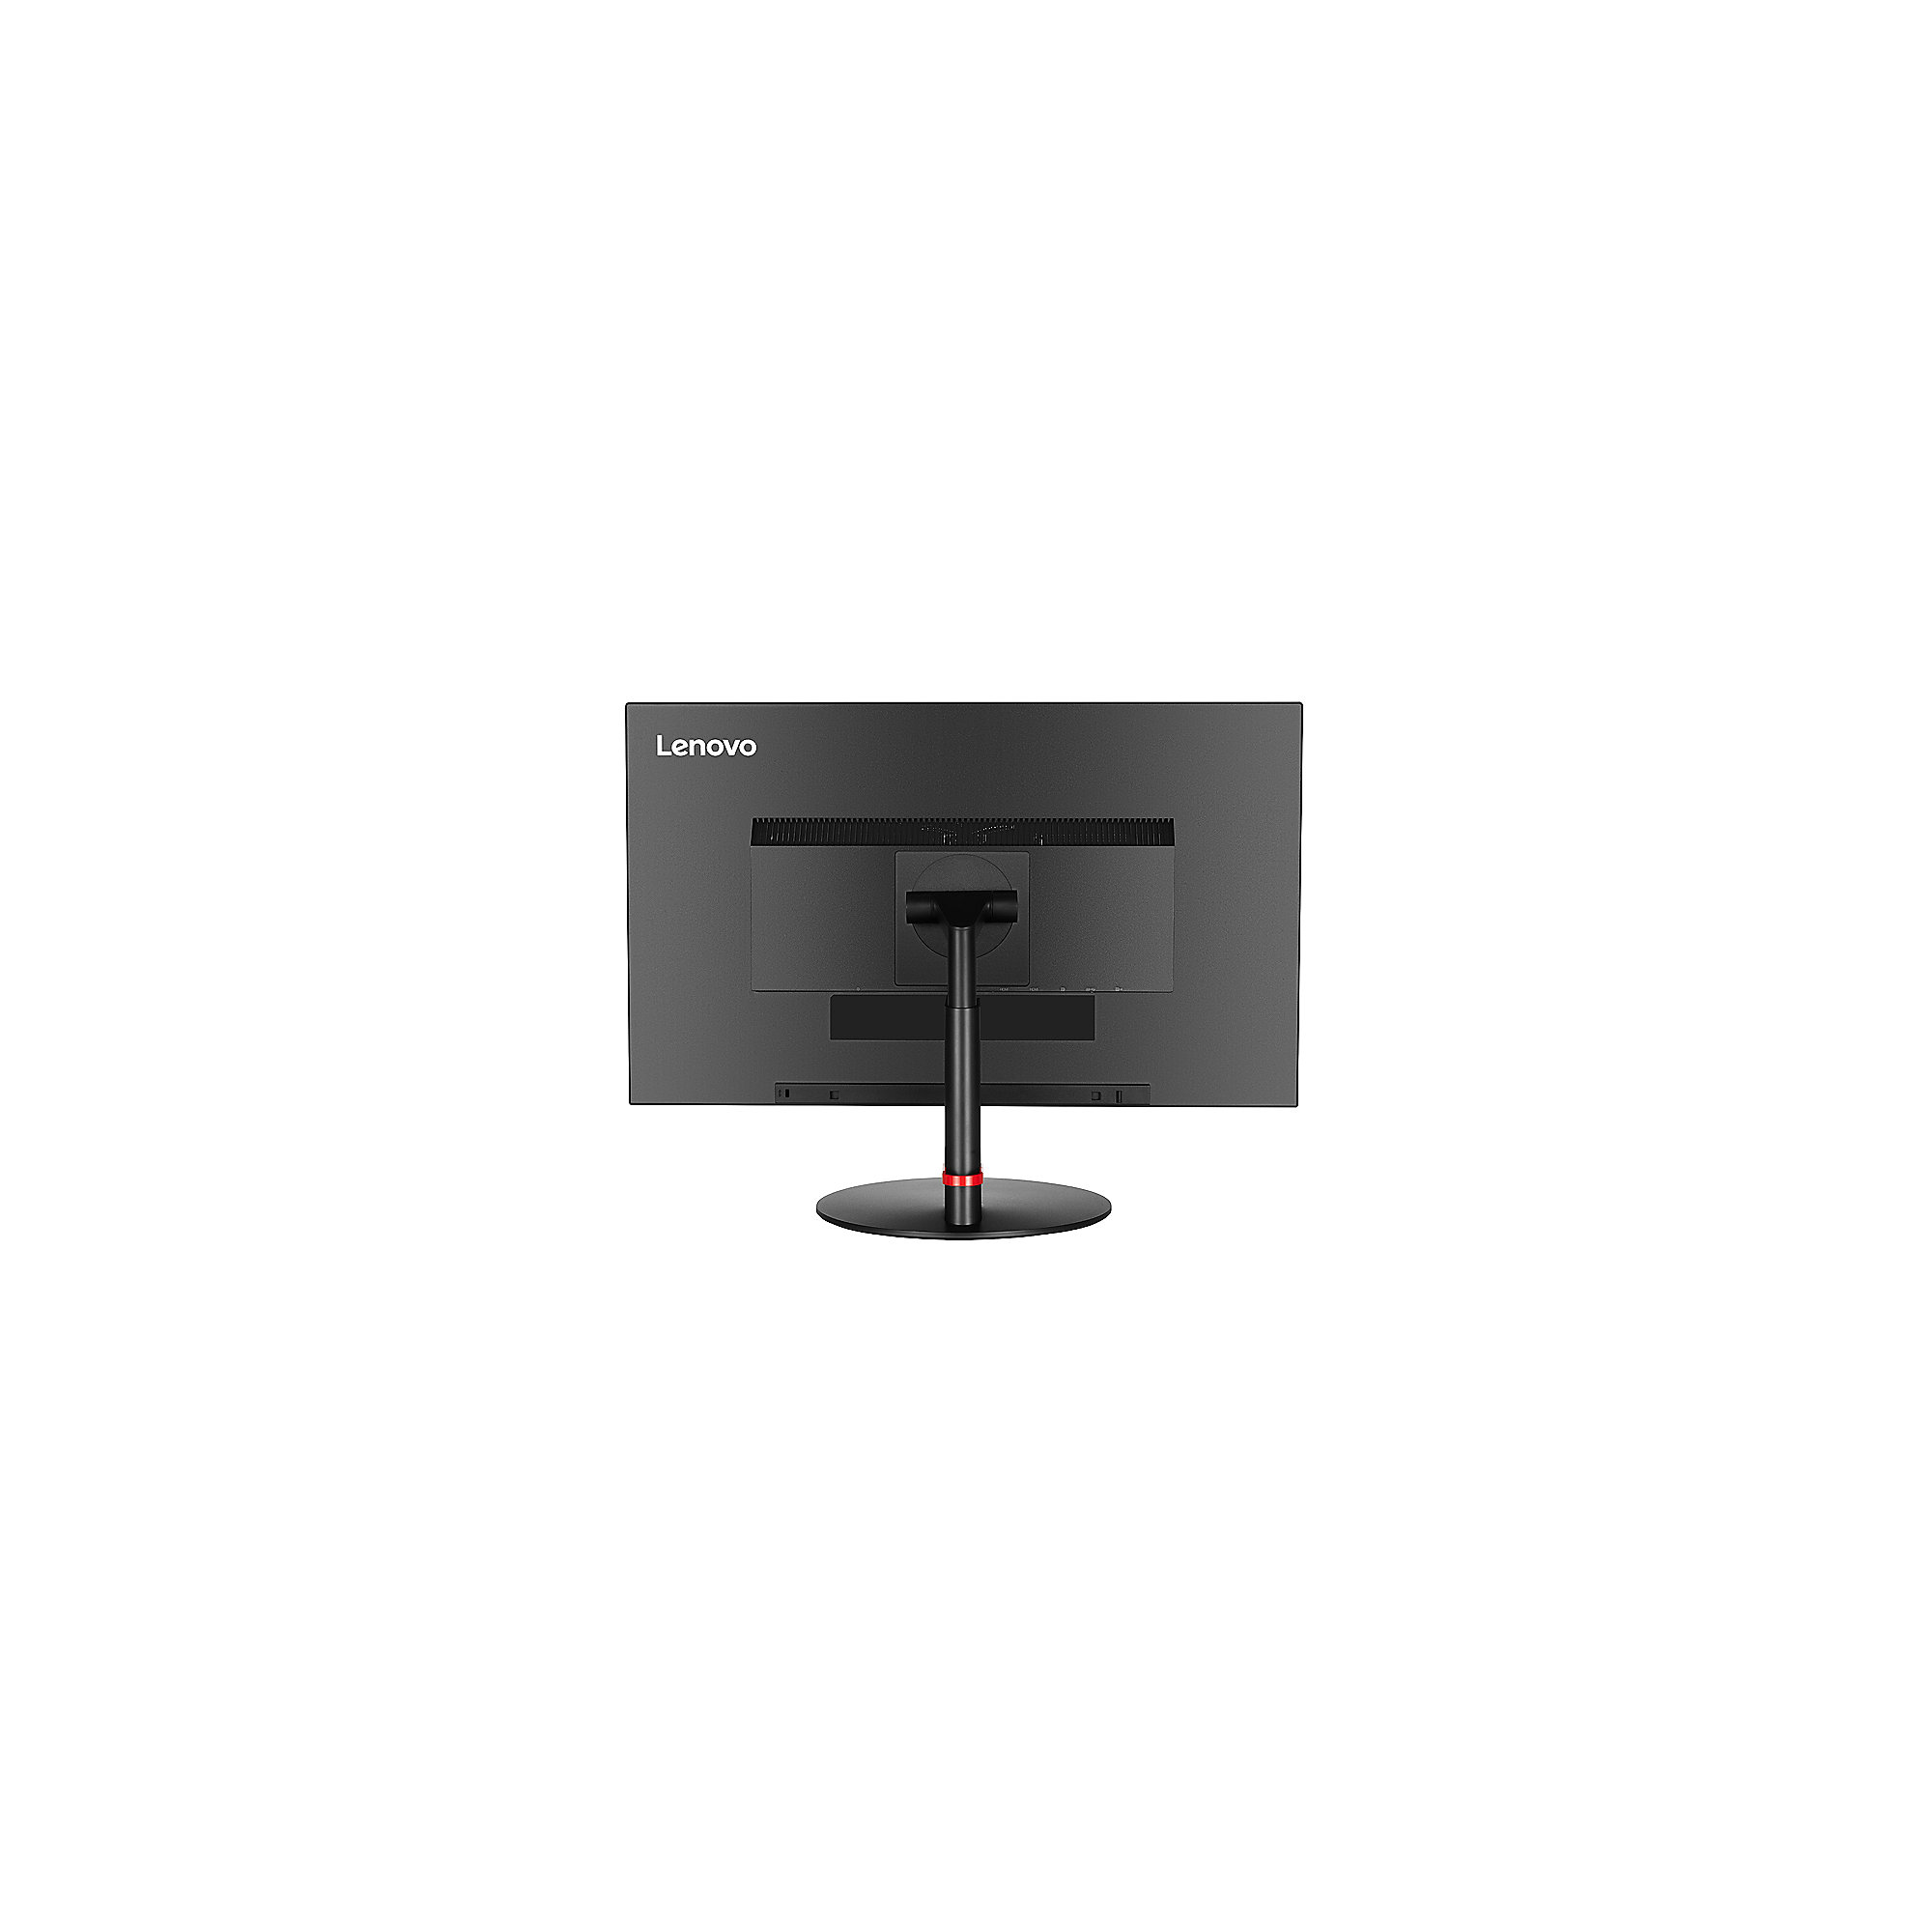 Lenovo P27h Pro-Series 27 Zoll 16:9 QHD TFT HDMI/DP/USB-C 6ms 1000:1 LED